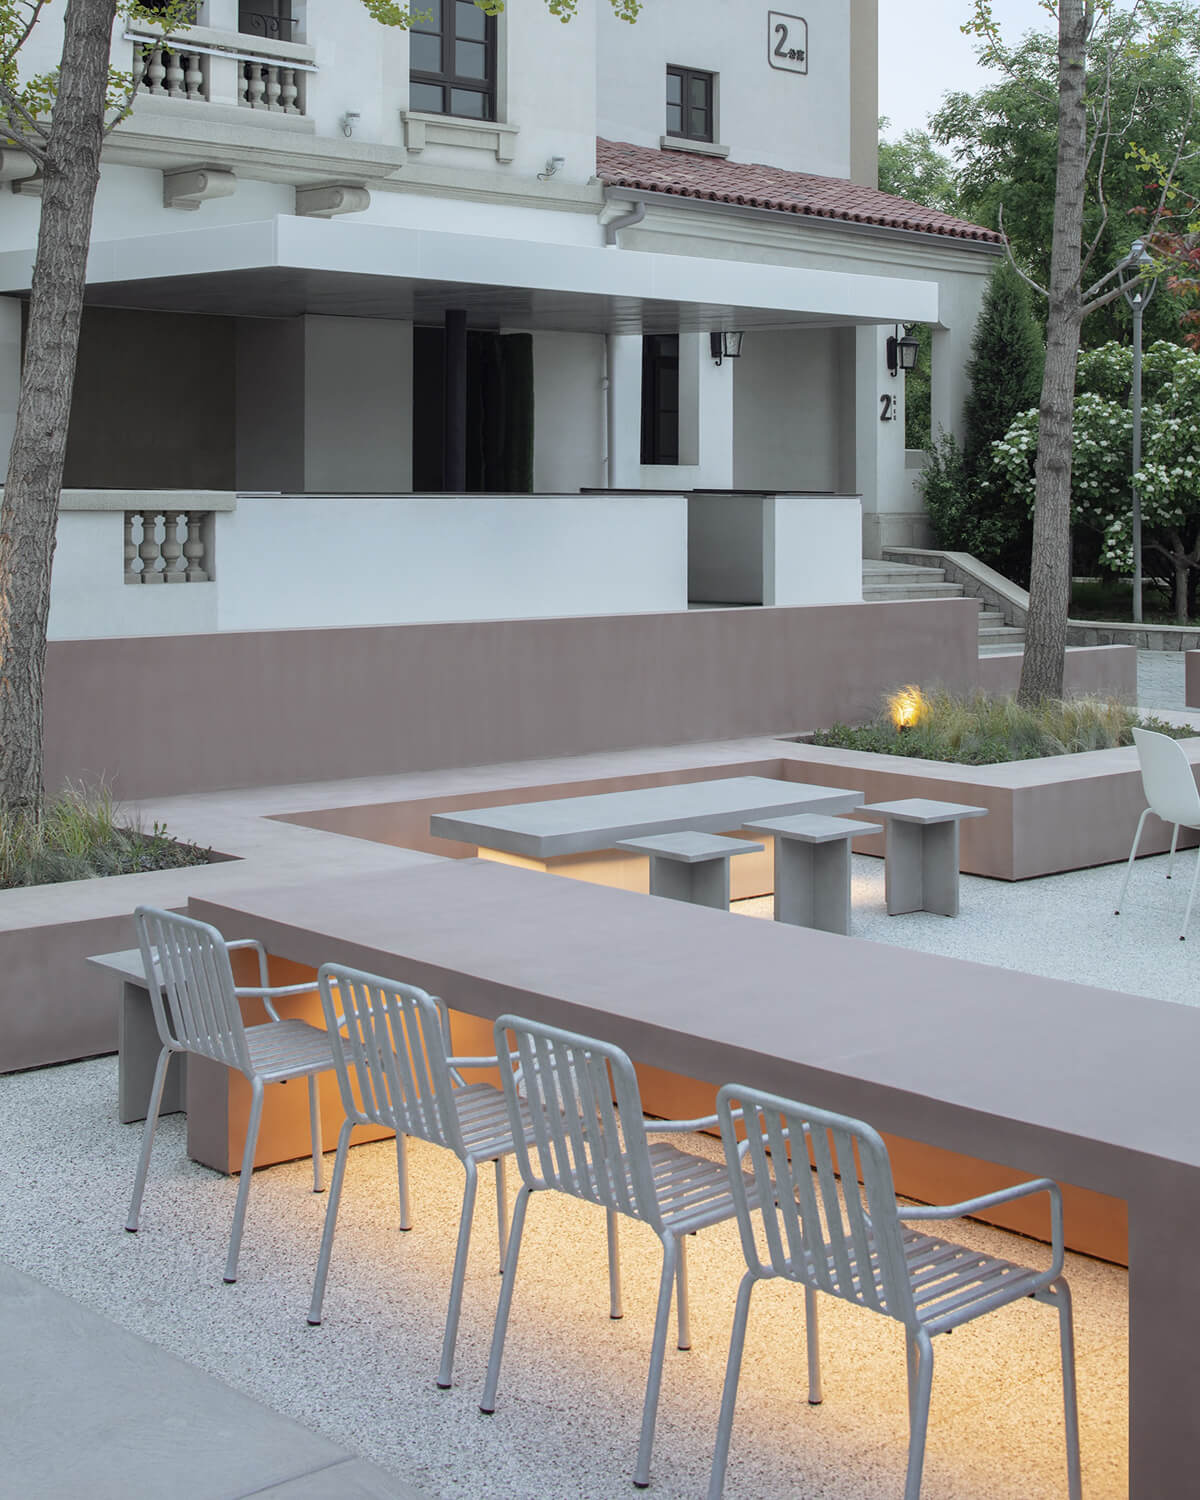 Close-up view of the outdoor seating area showing integrated Dagu cement tables and white chairs